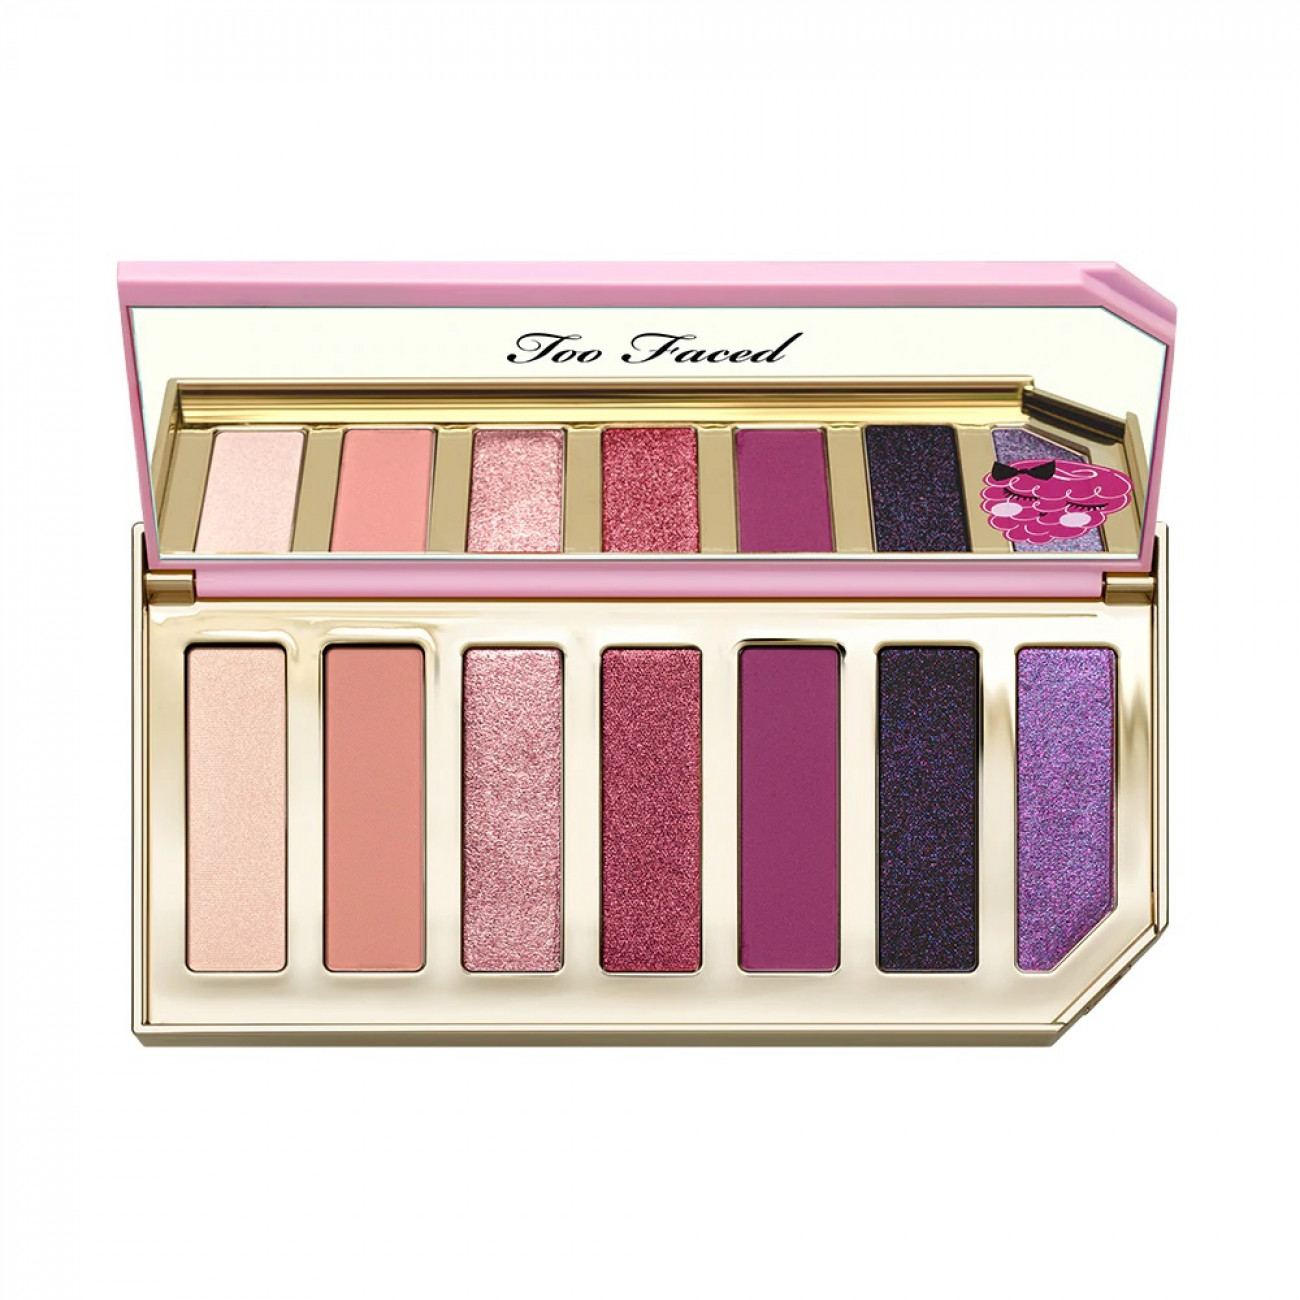 Paleta De Sombras Too Faced Razzle Dazzle Berry